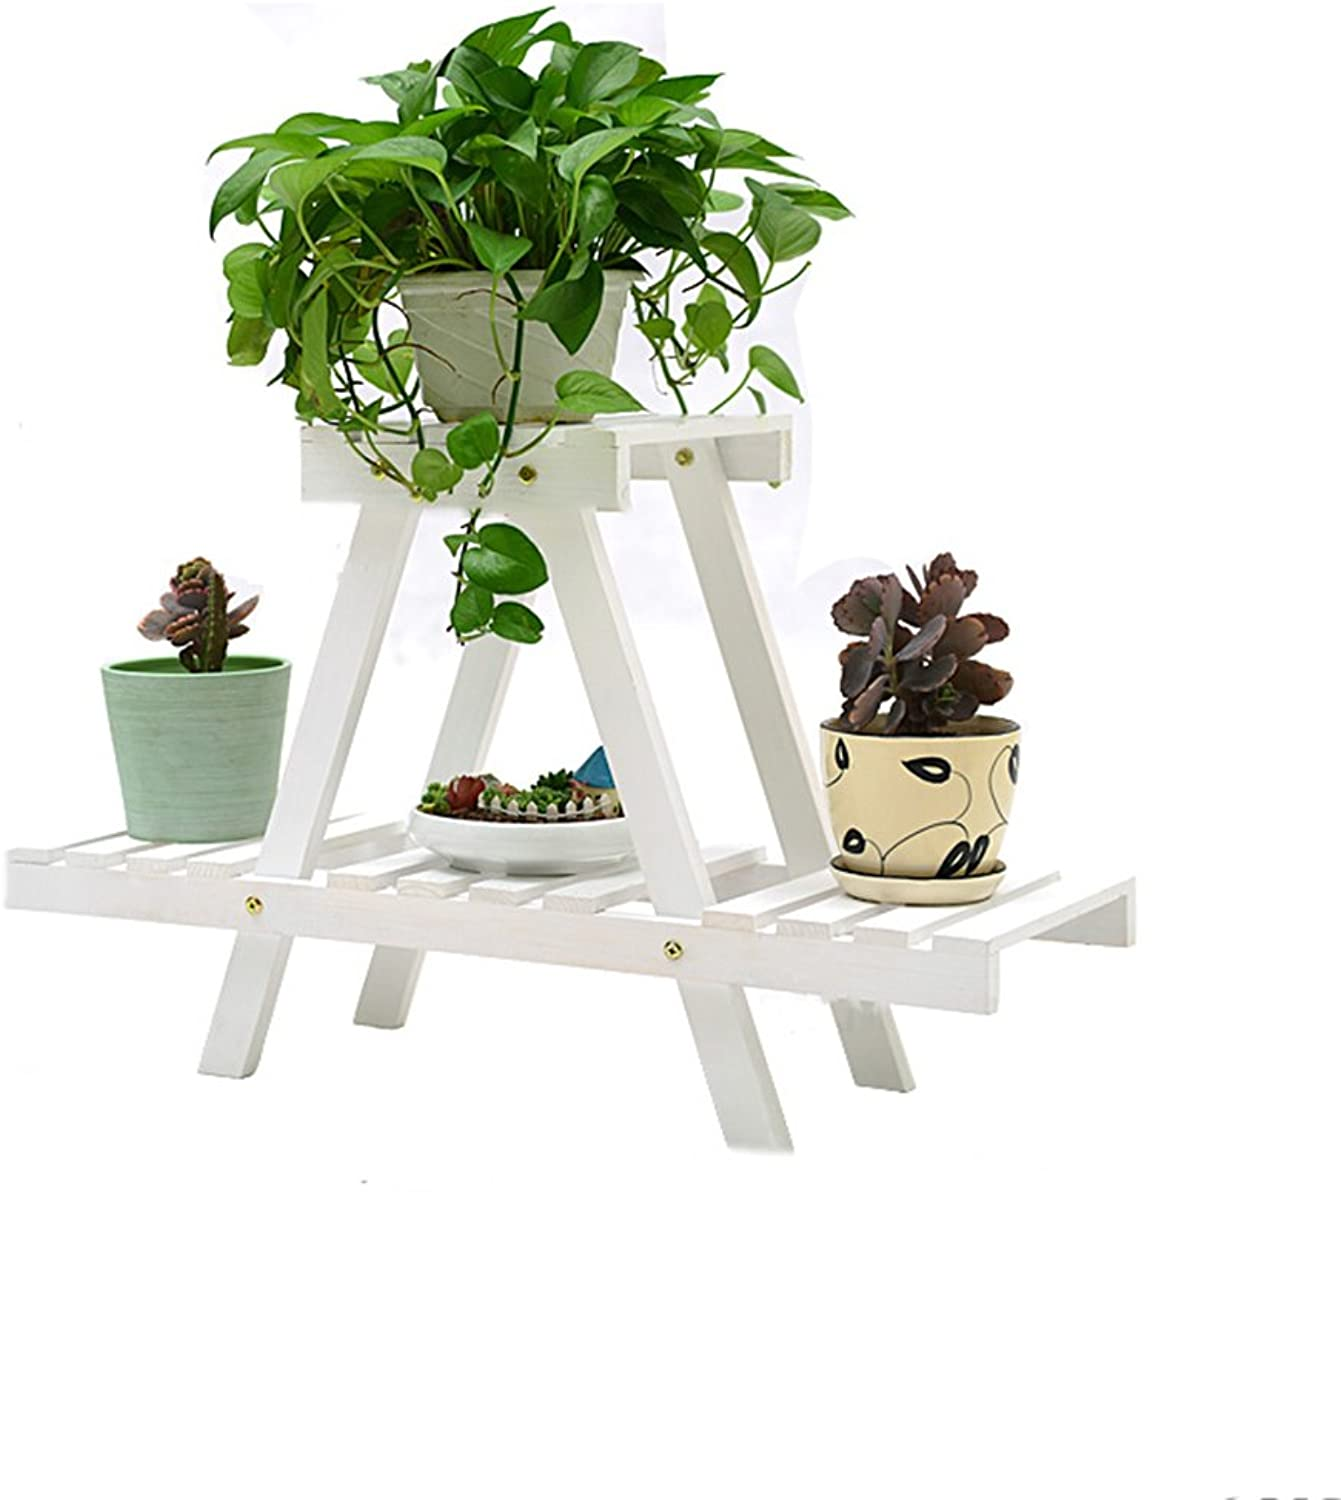 Plant Container Solid Wood Flower Racks Floor-Mounted Multi-Storey Flower Shelf Balcony Flower Pots Living Room Interior Wood Flower Stand (color   White)